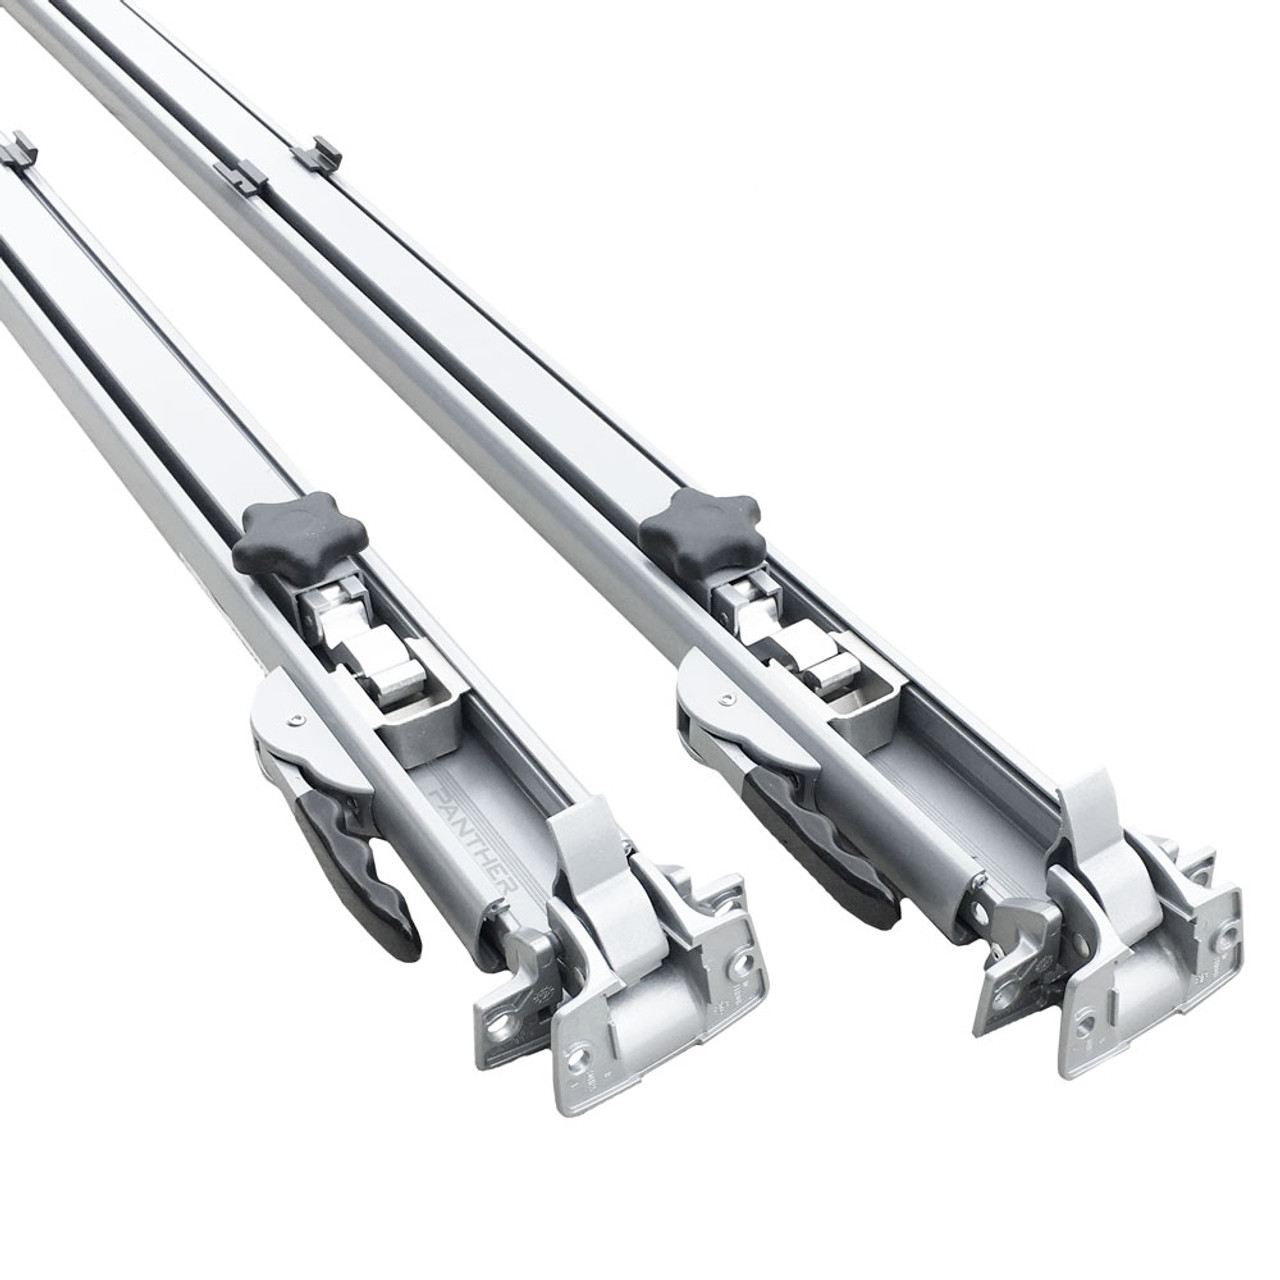 Dometic™ A&E 8273000.401 RV Awning Arm Extension Hardware ...